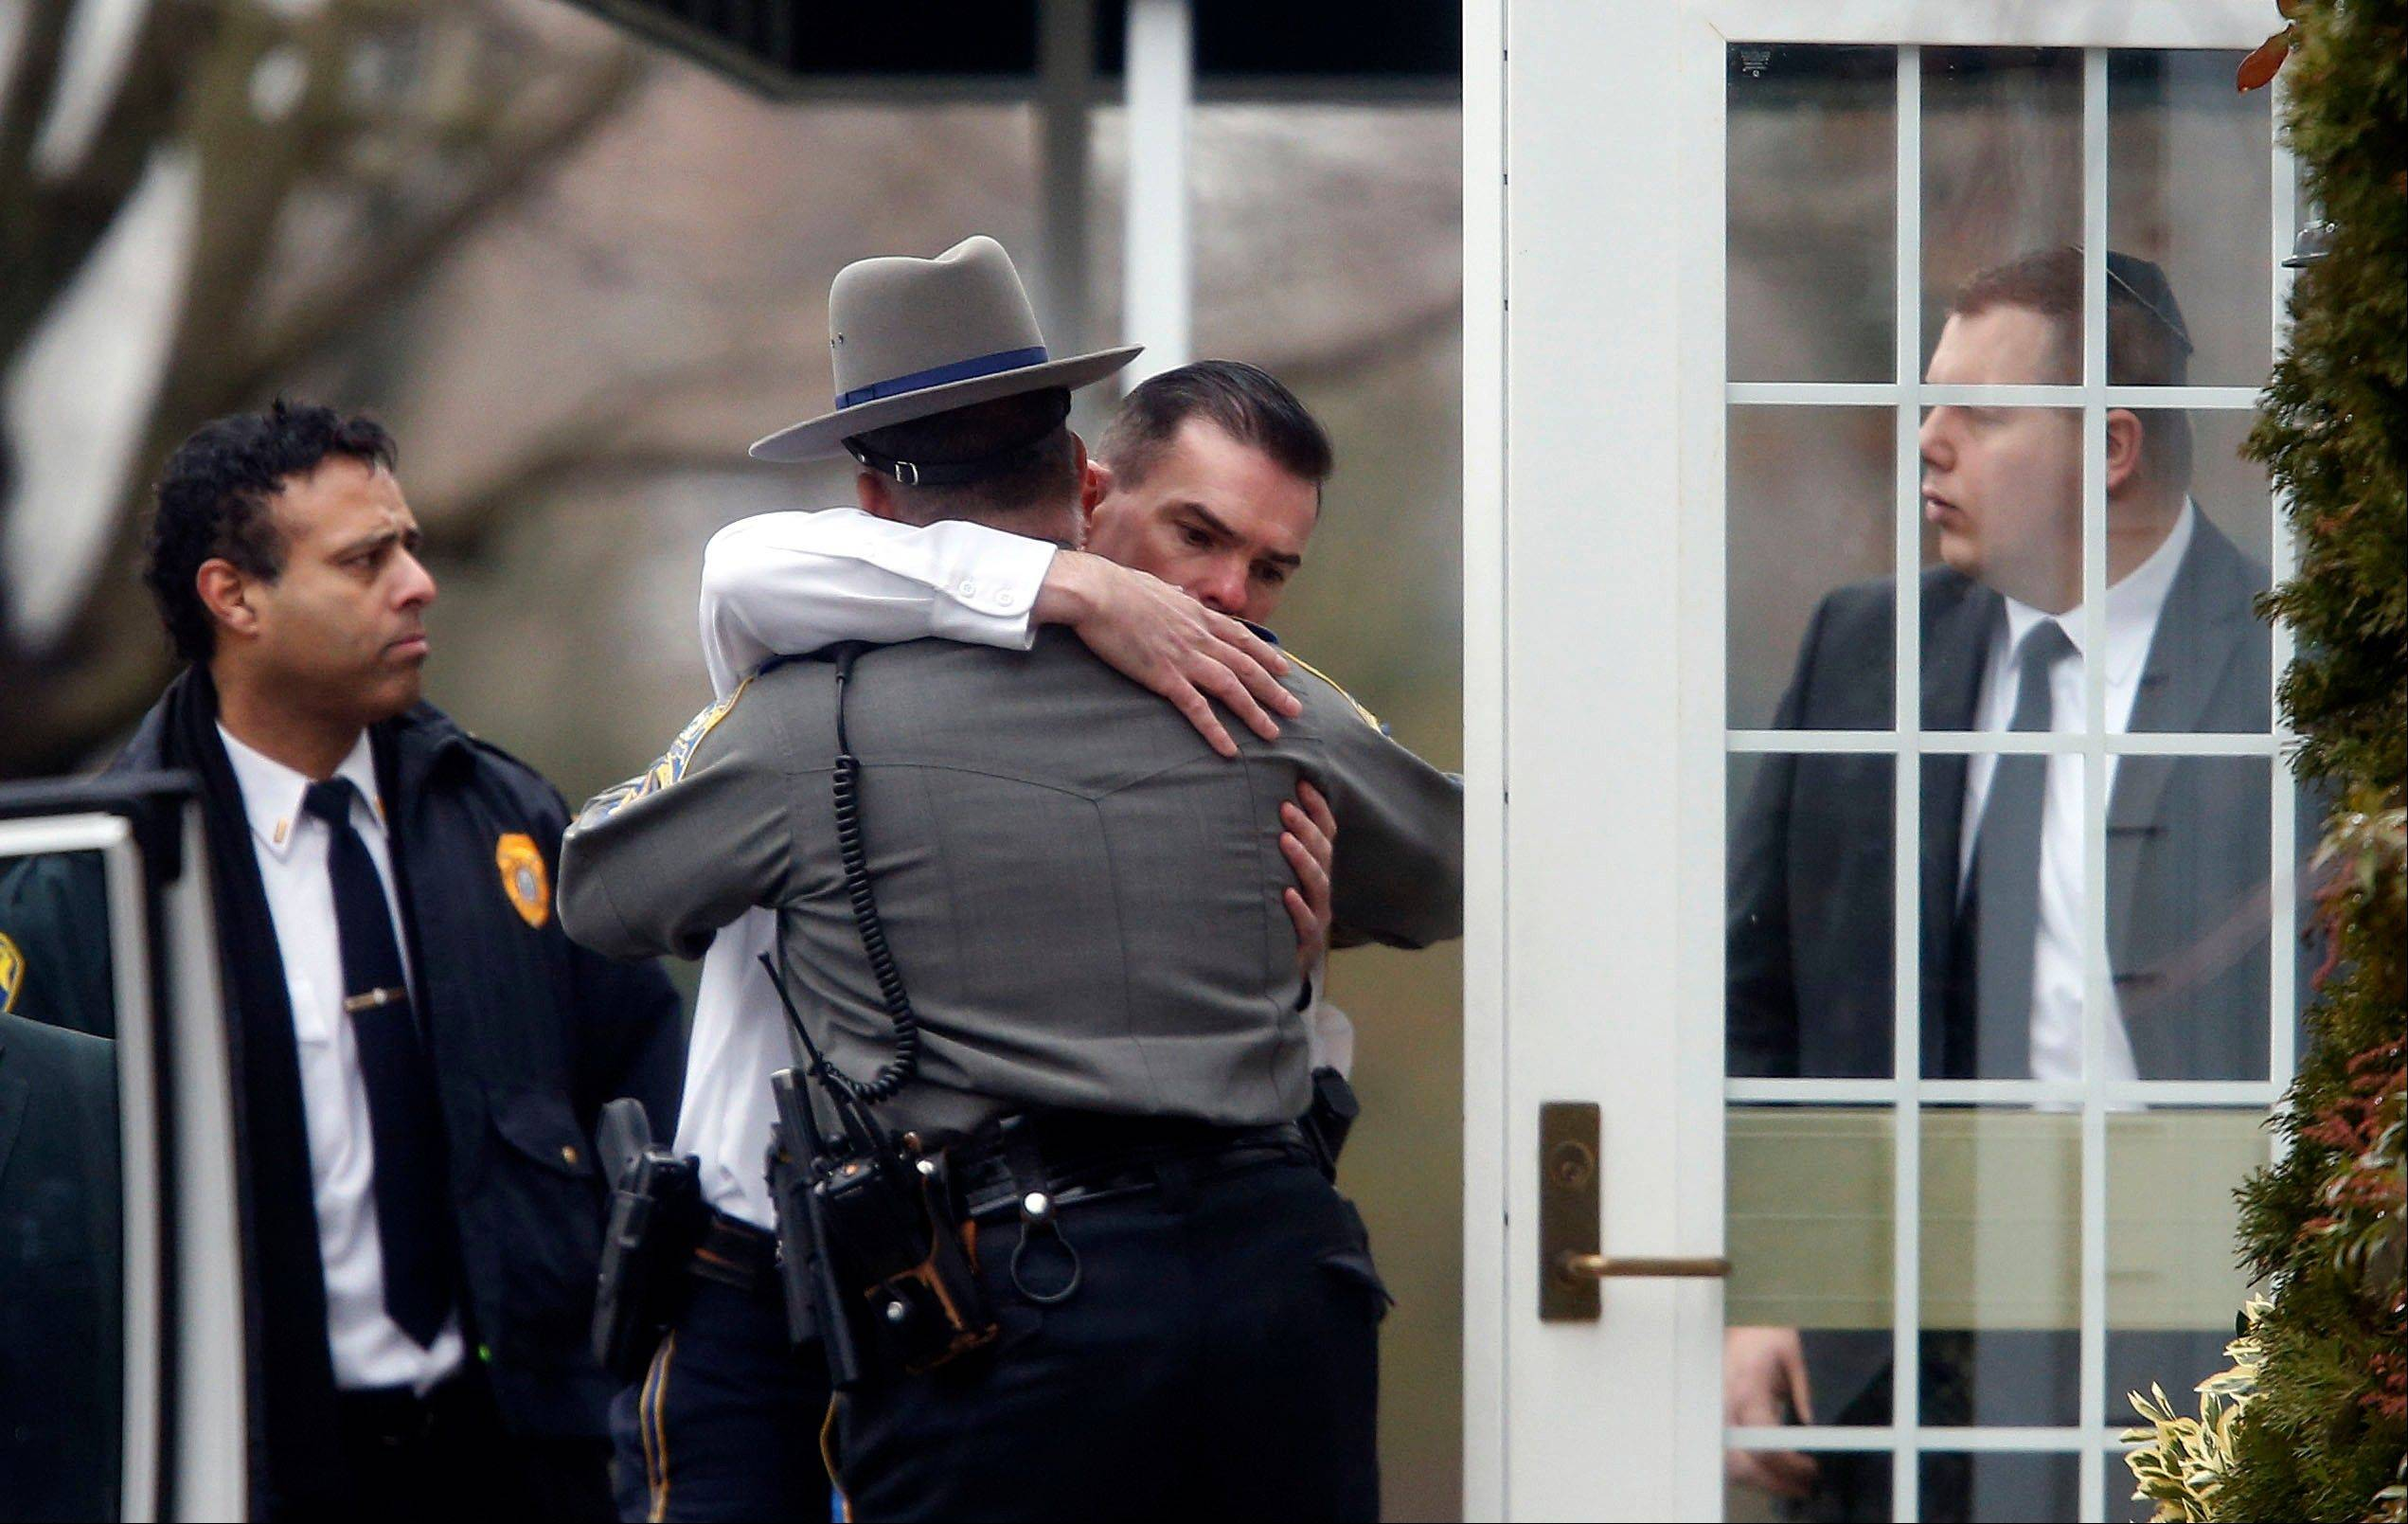 Police officers comfort one another outside a funeral service for 6-year-old Noah Pozner, Monday, Dec. 17, 2012, in Fairfield, Conn. Pozner was killed when a gunman walked into Sandy Hook Elementary School in Newtown Friday and opened fire, killing 26 people, including 20 children.